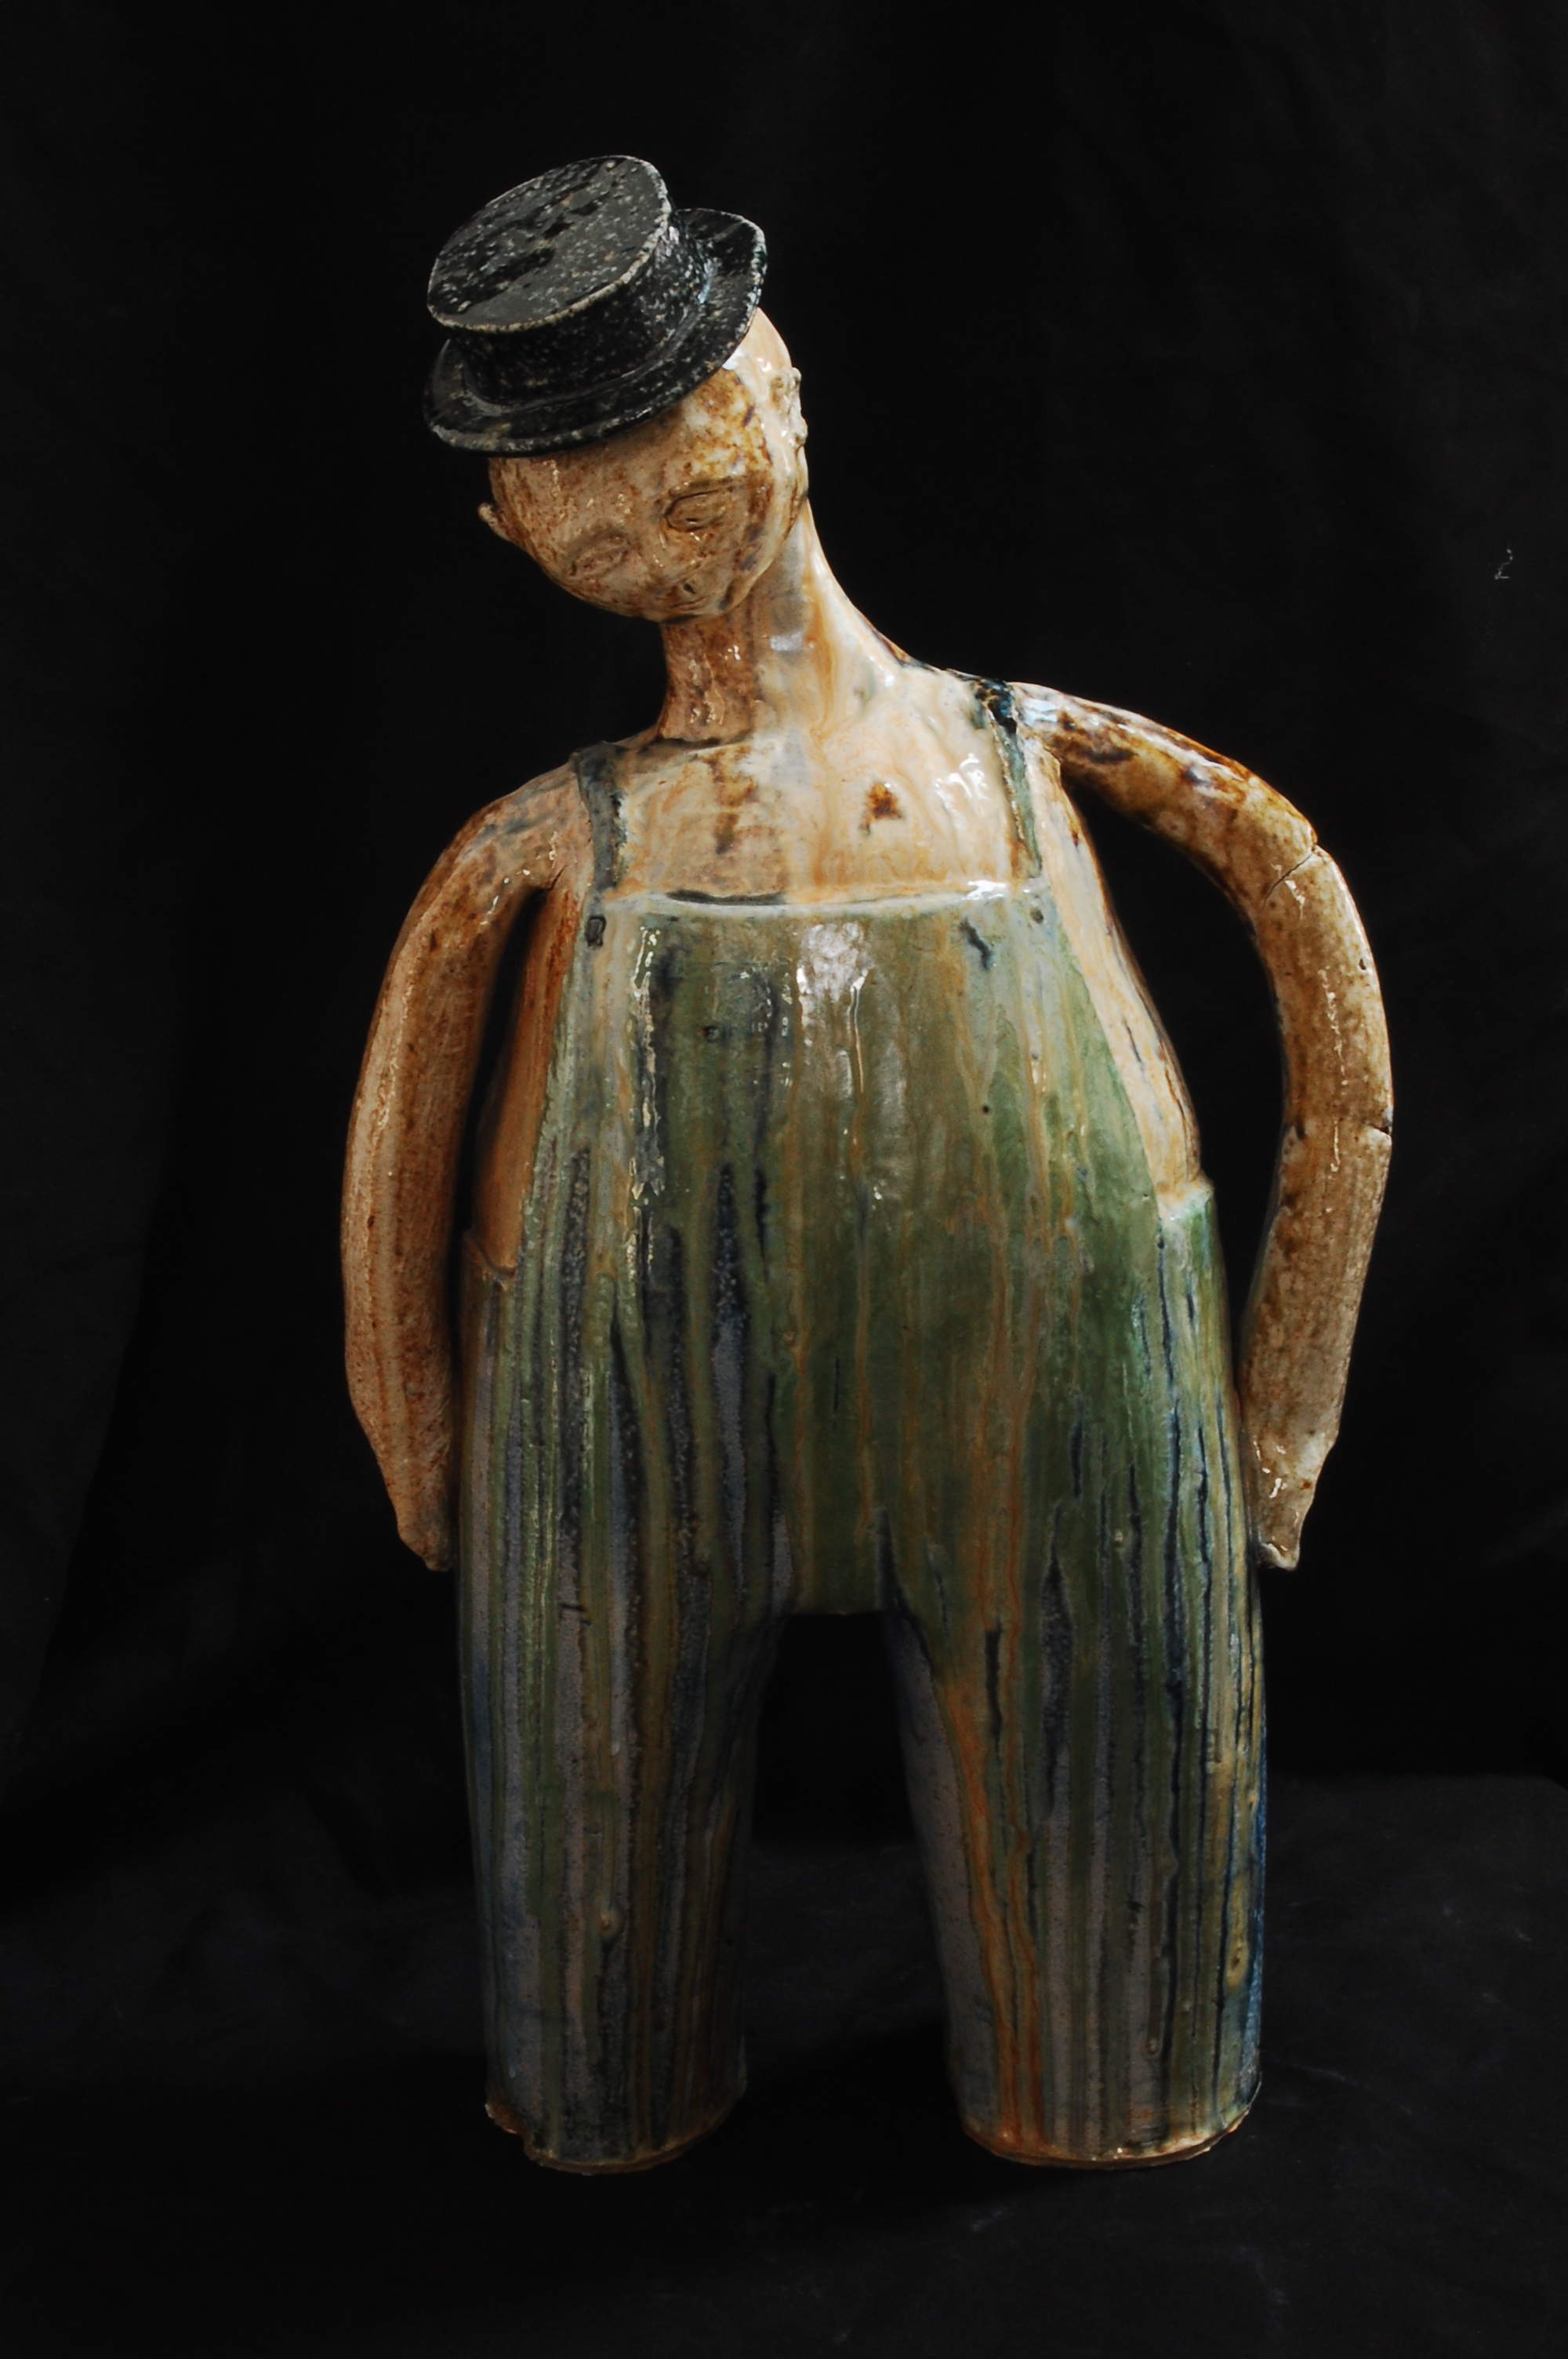 "Overalls and a Pork Pie Hat 23"" high ceramic 2013"